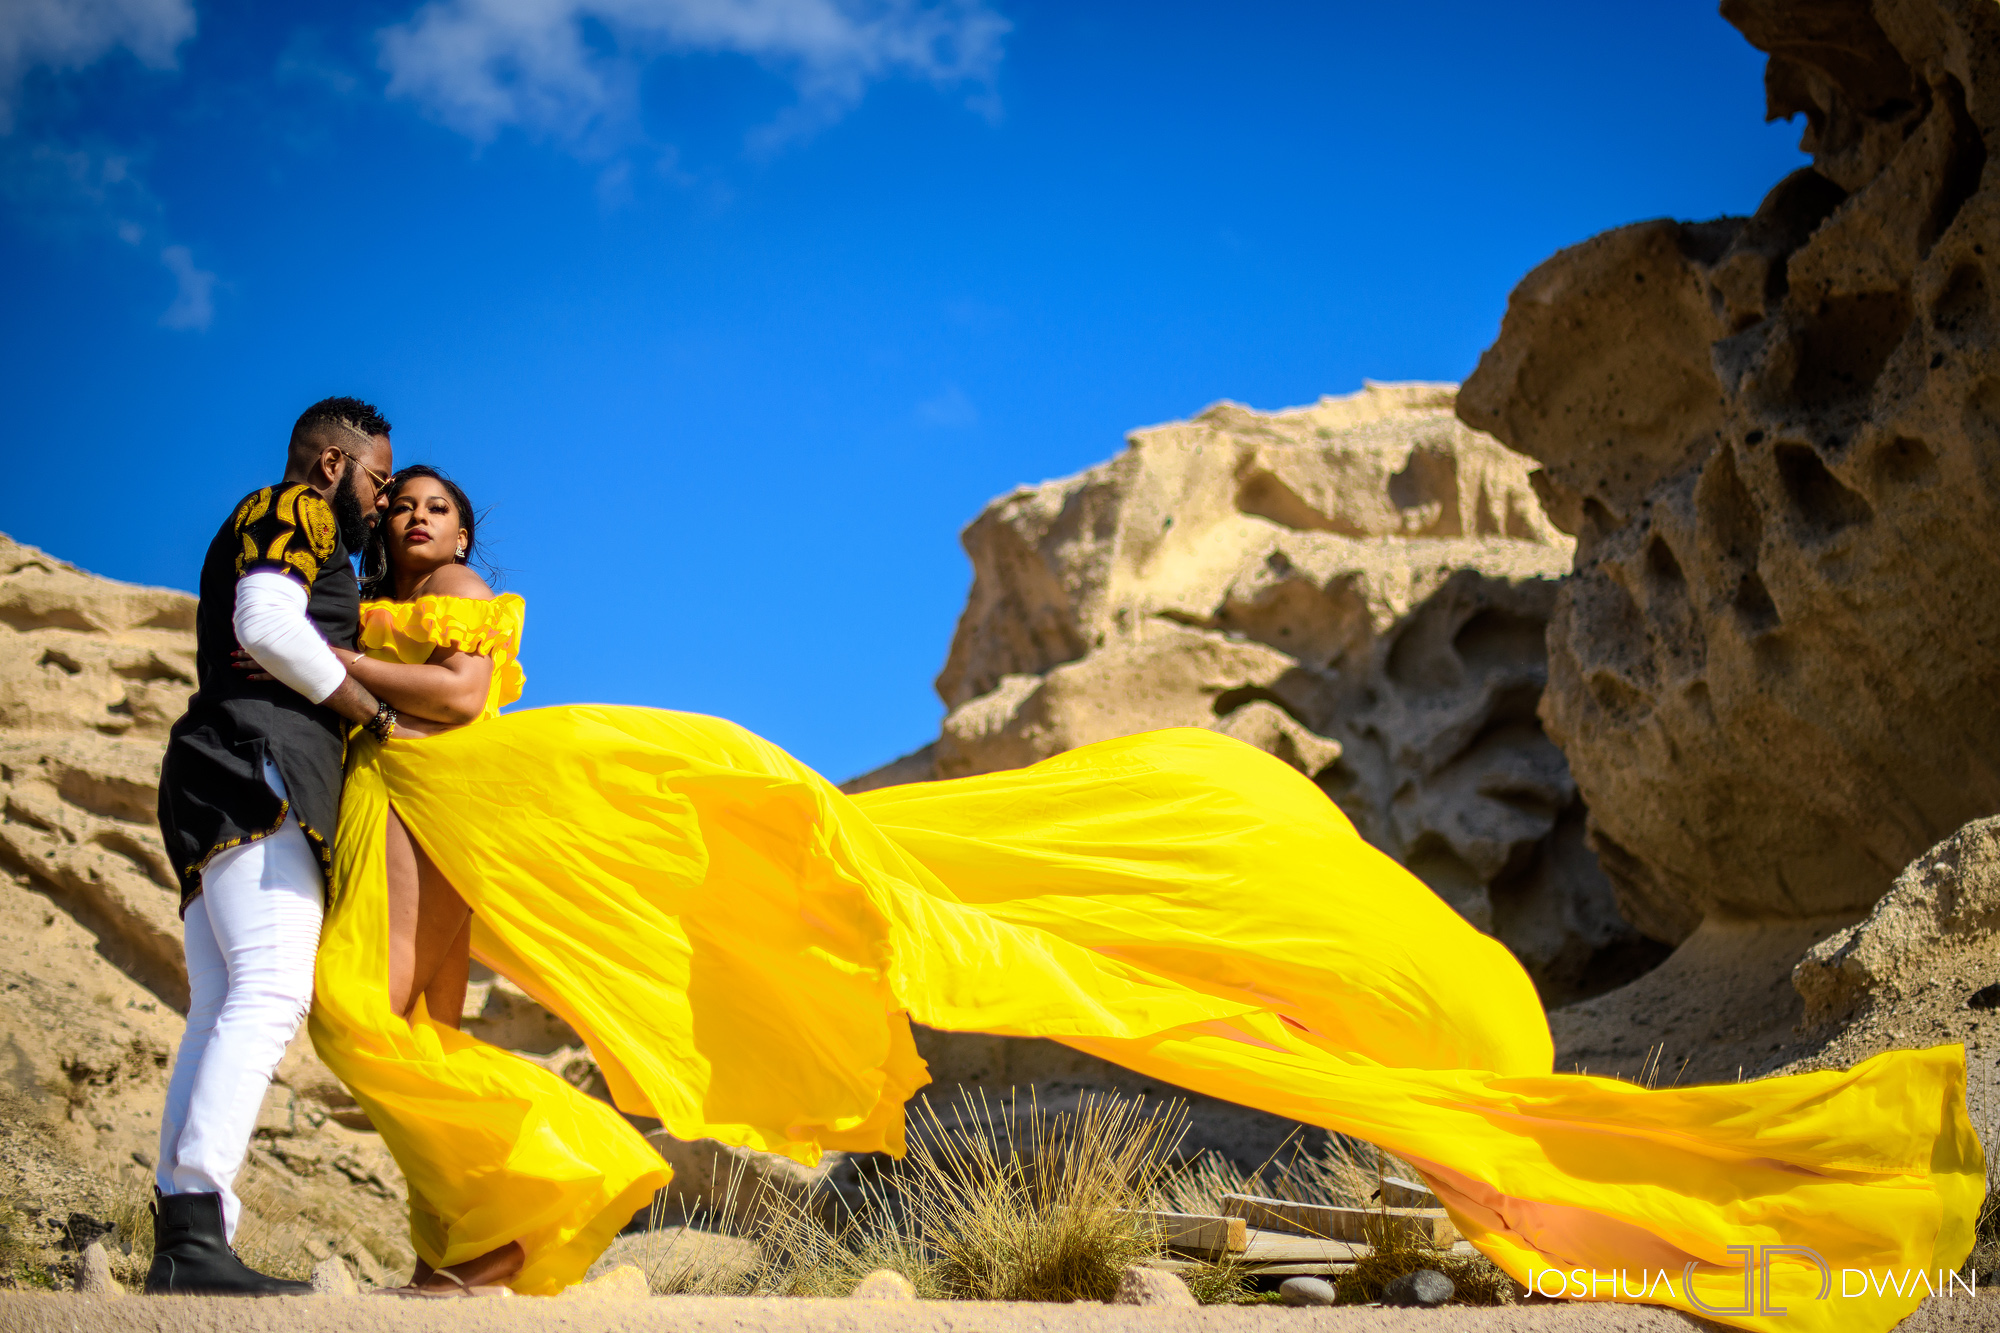 ekene-issac-16-santorini-oia-thira-greece-wedding-engagement-photos-african-american-destination-photographer-joshua-dwain